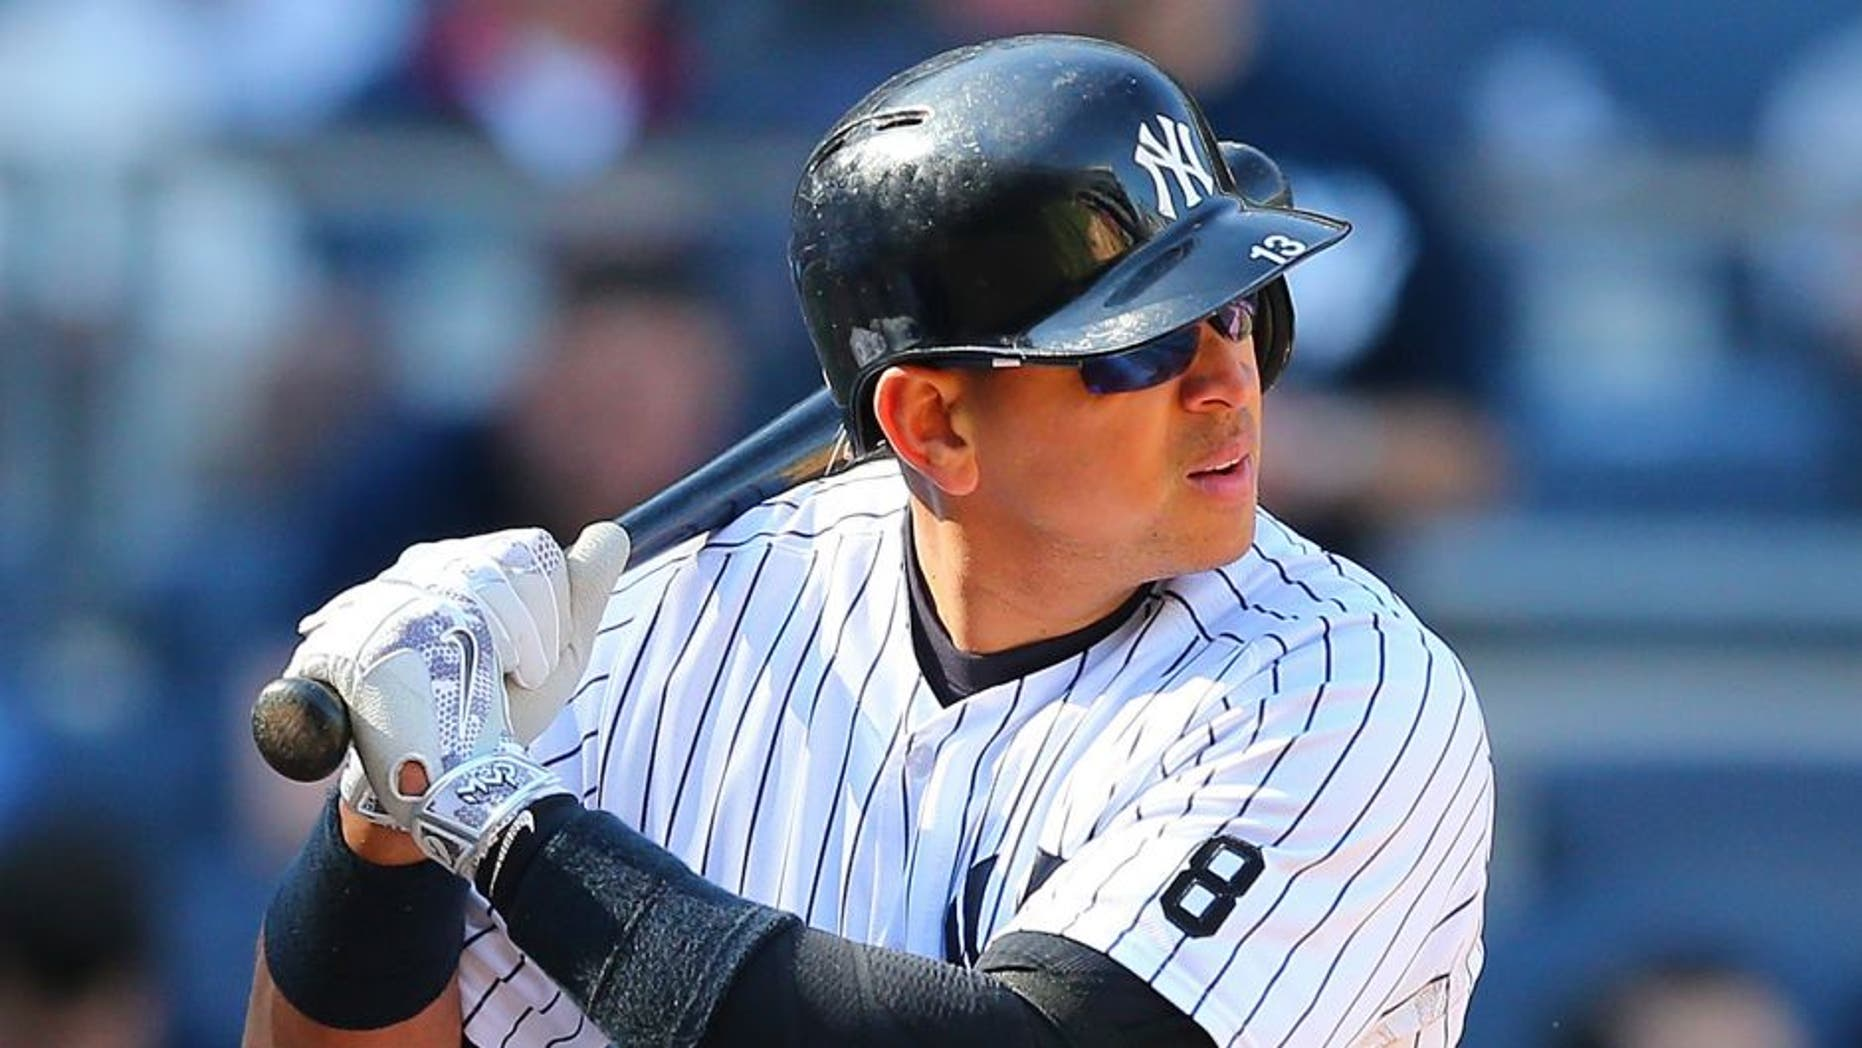 NEW YORK, NY - APRIL 16: Alex Rodriguez #13 of the New York Yankees in action against the Seattle Mariners at Yankee Stadium on April 16, 2016 in the Bronx borough of New York City. Seattle Mariners defeated the New York Yankees 3-2. (Photo by Mike Stobe/Getty Images)